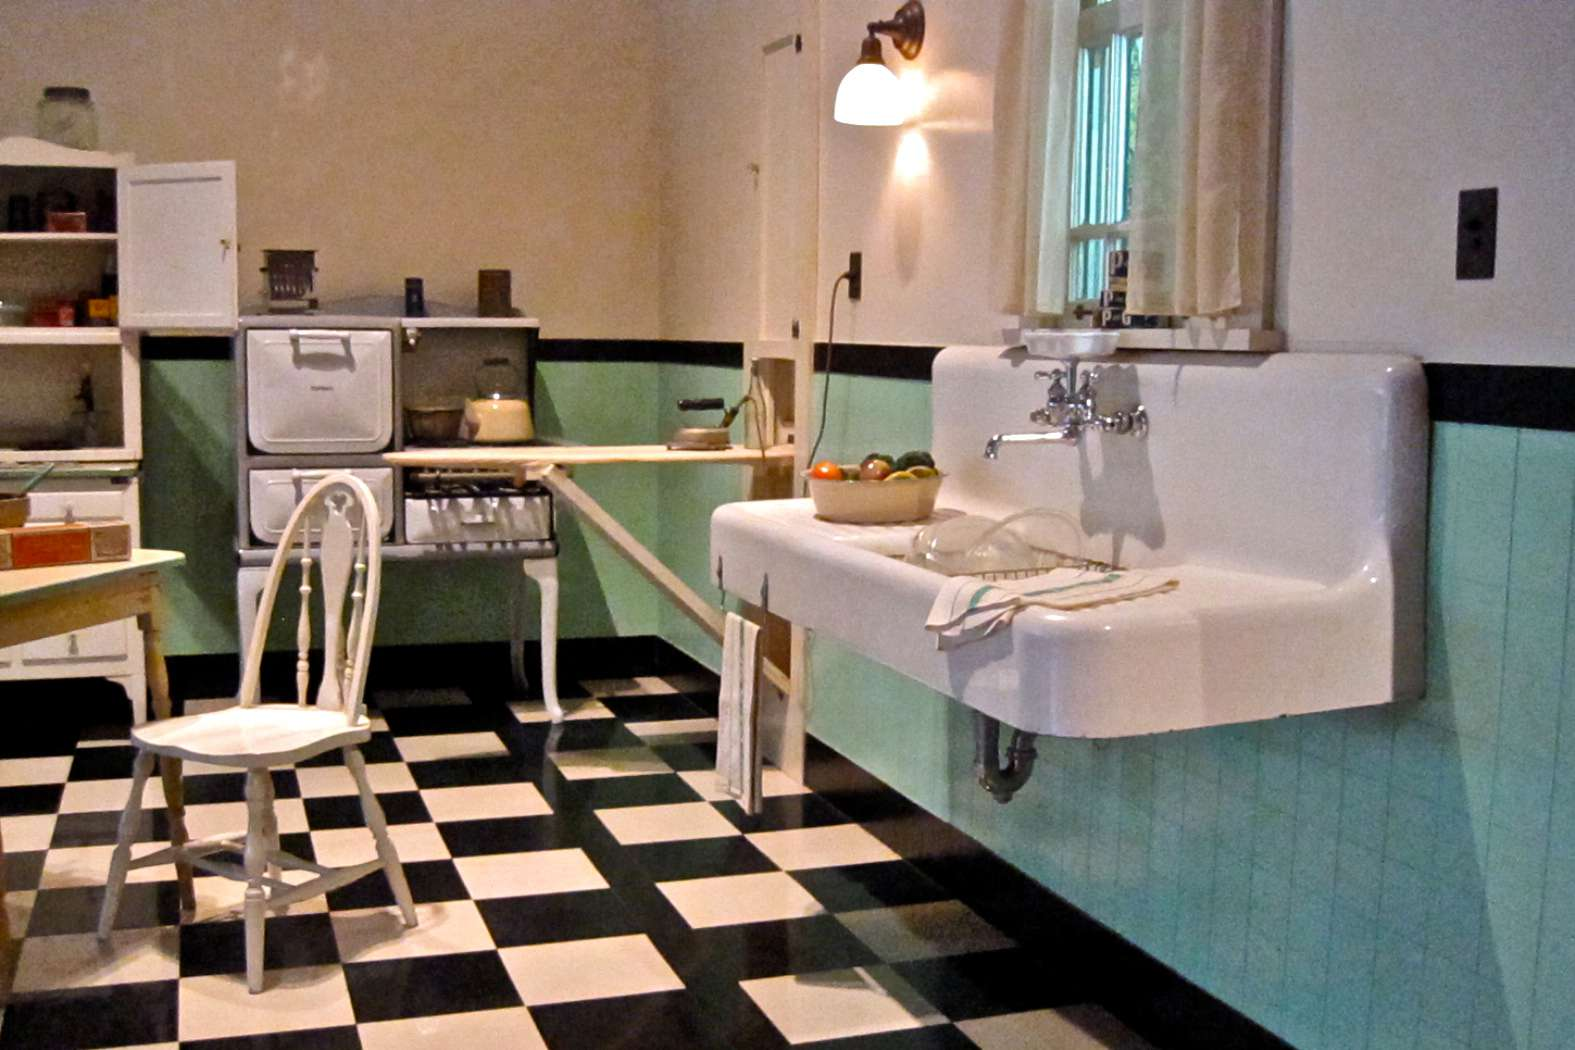 Vintage kitchen with a built-in ironing board cabinet.